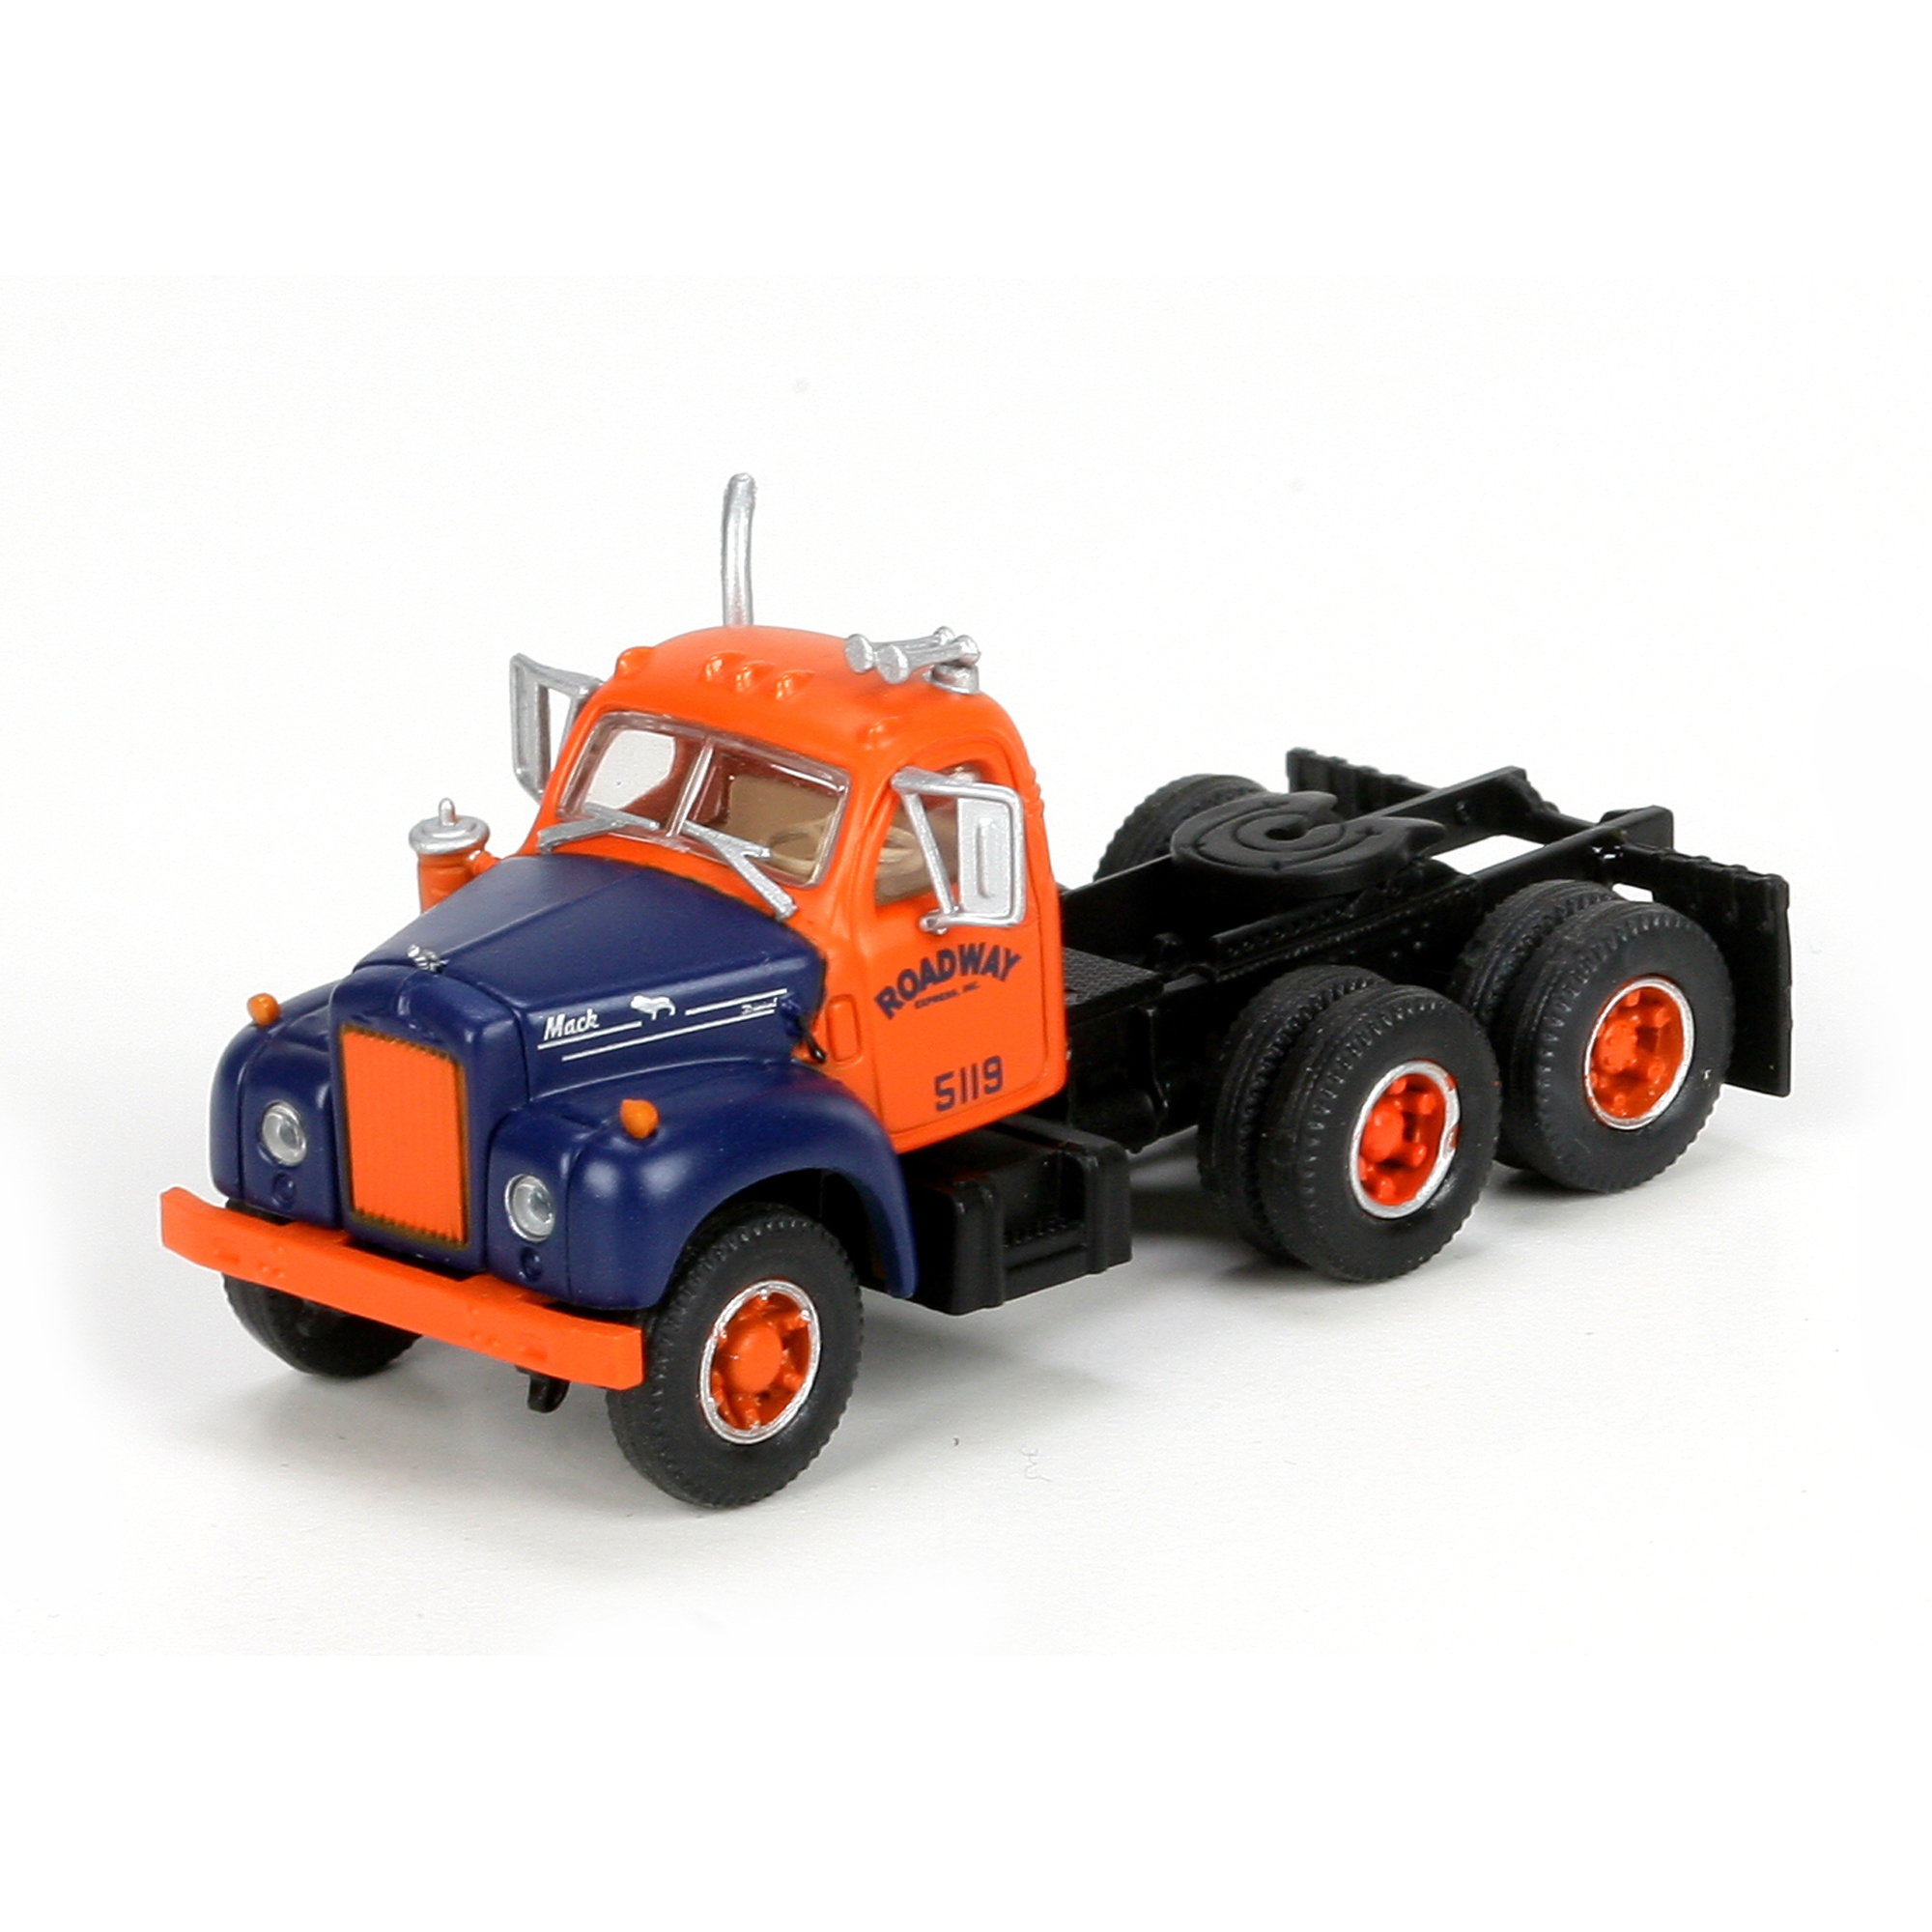 Athearn N Scale 3 Axle Tractor : Ho rtr mack b tractor roadway ath athearn trains